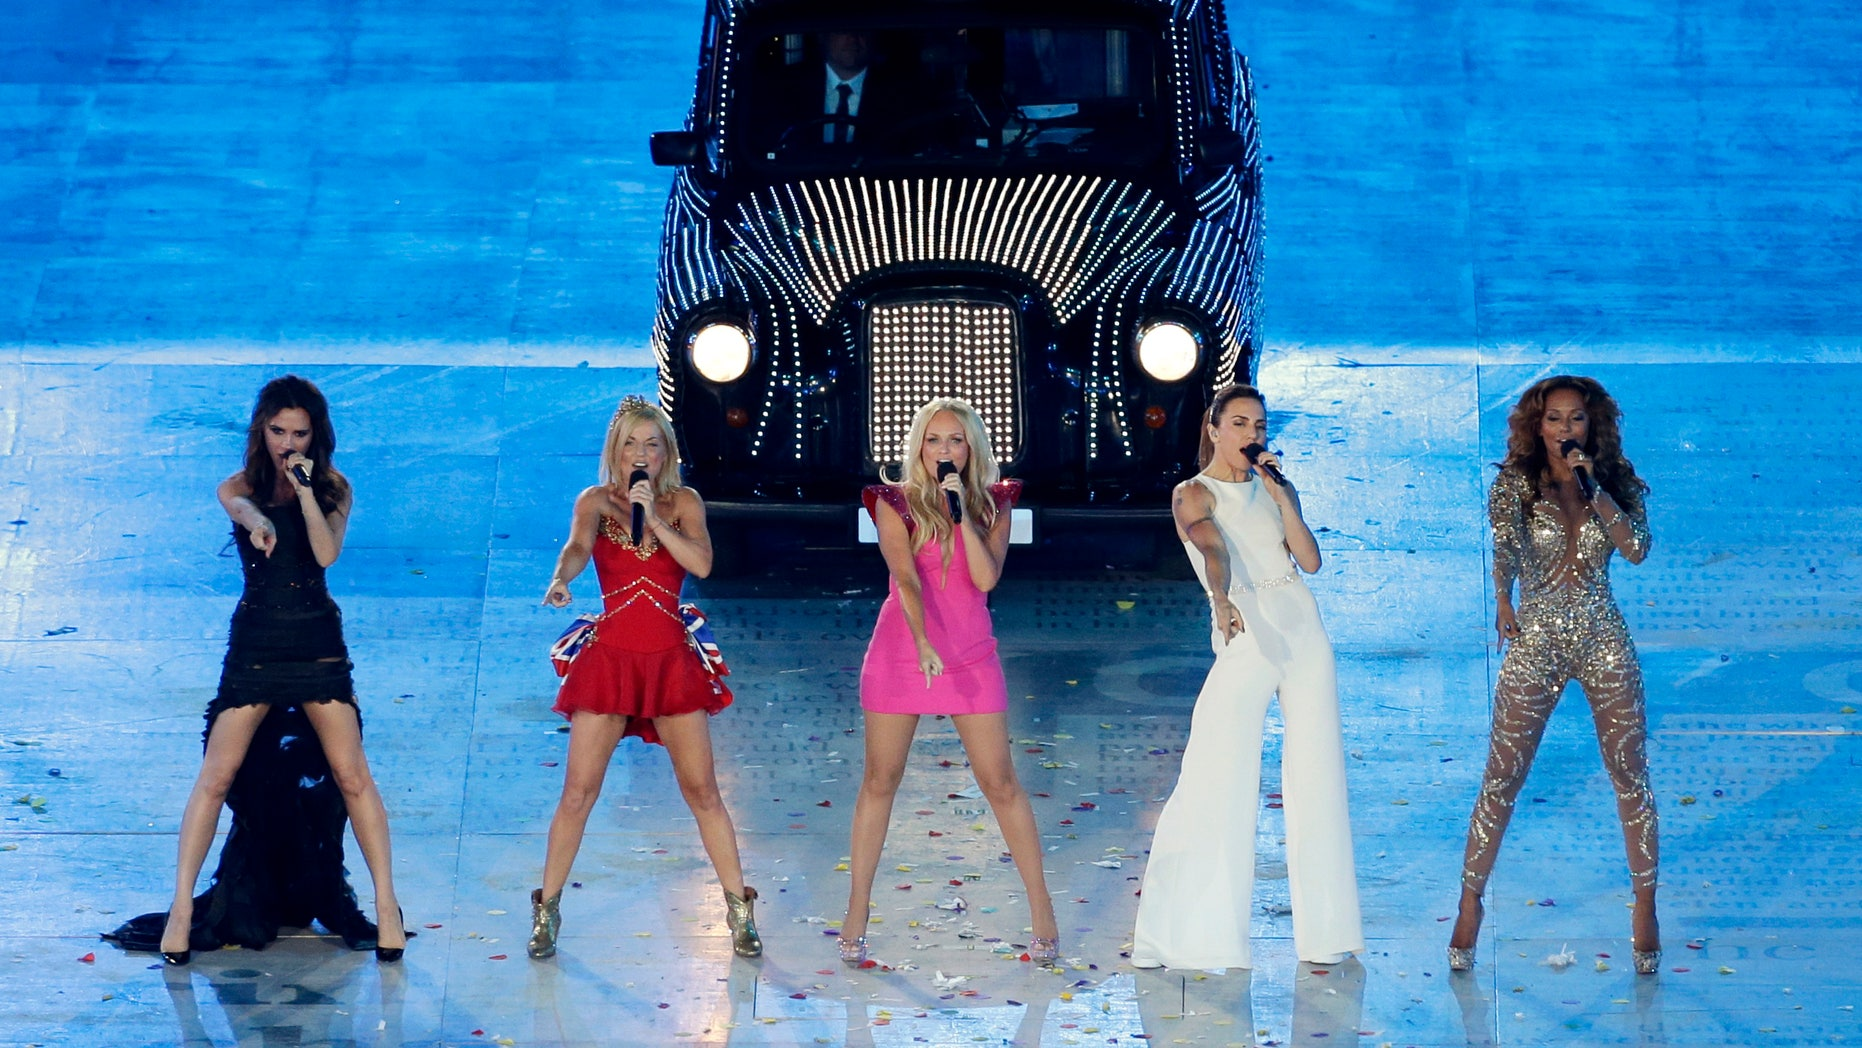 Aug. 12, 2012: The Spice Girls perform during the Closing Ceremony at the 2012 Summer Olympics in London.